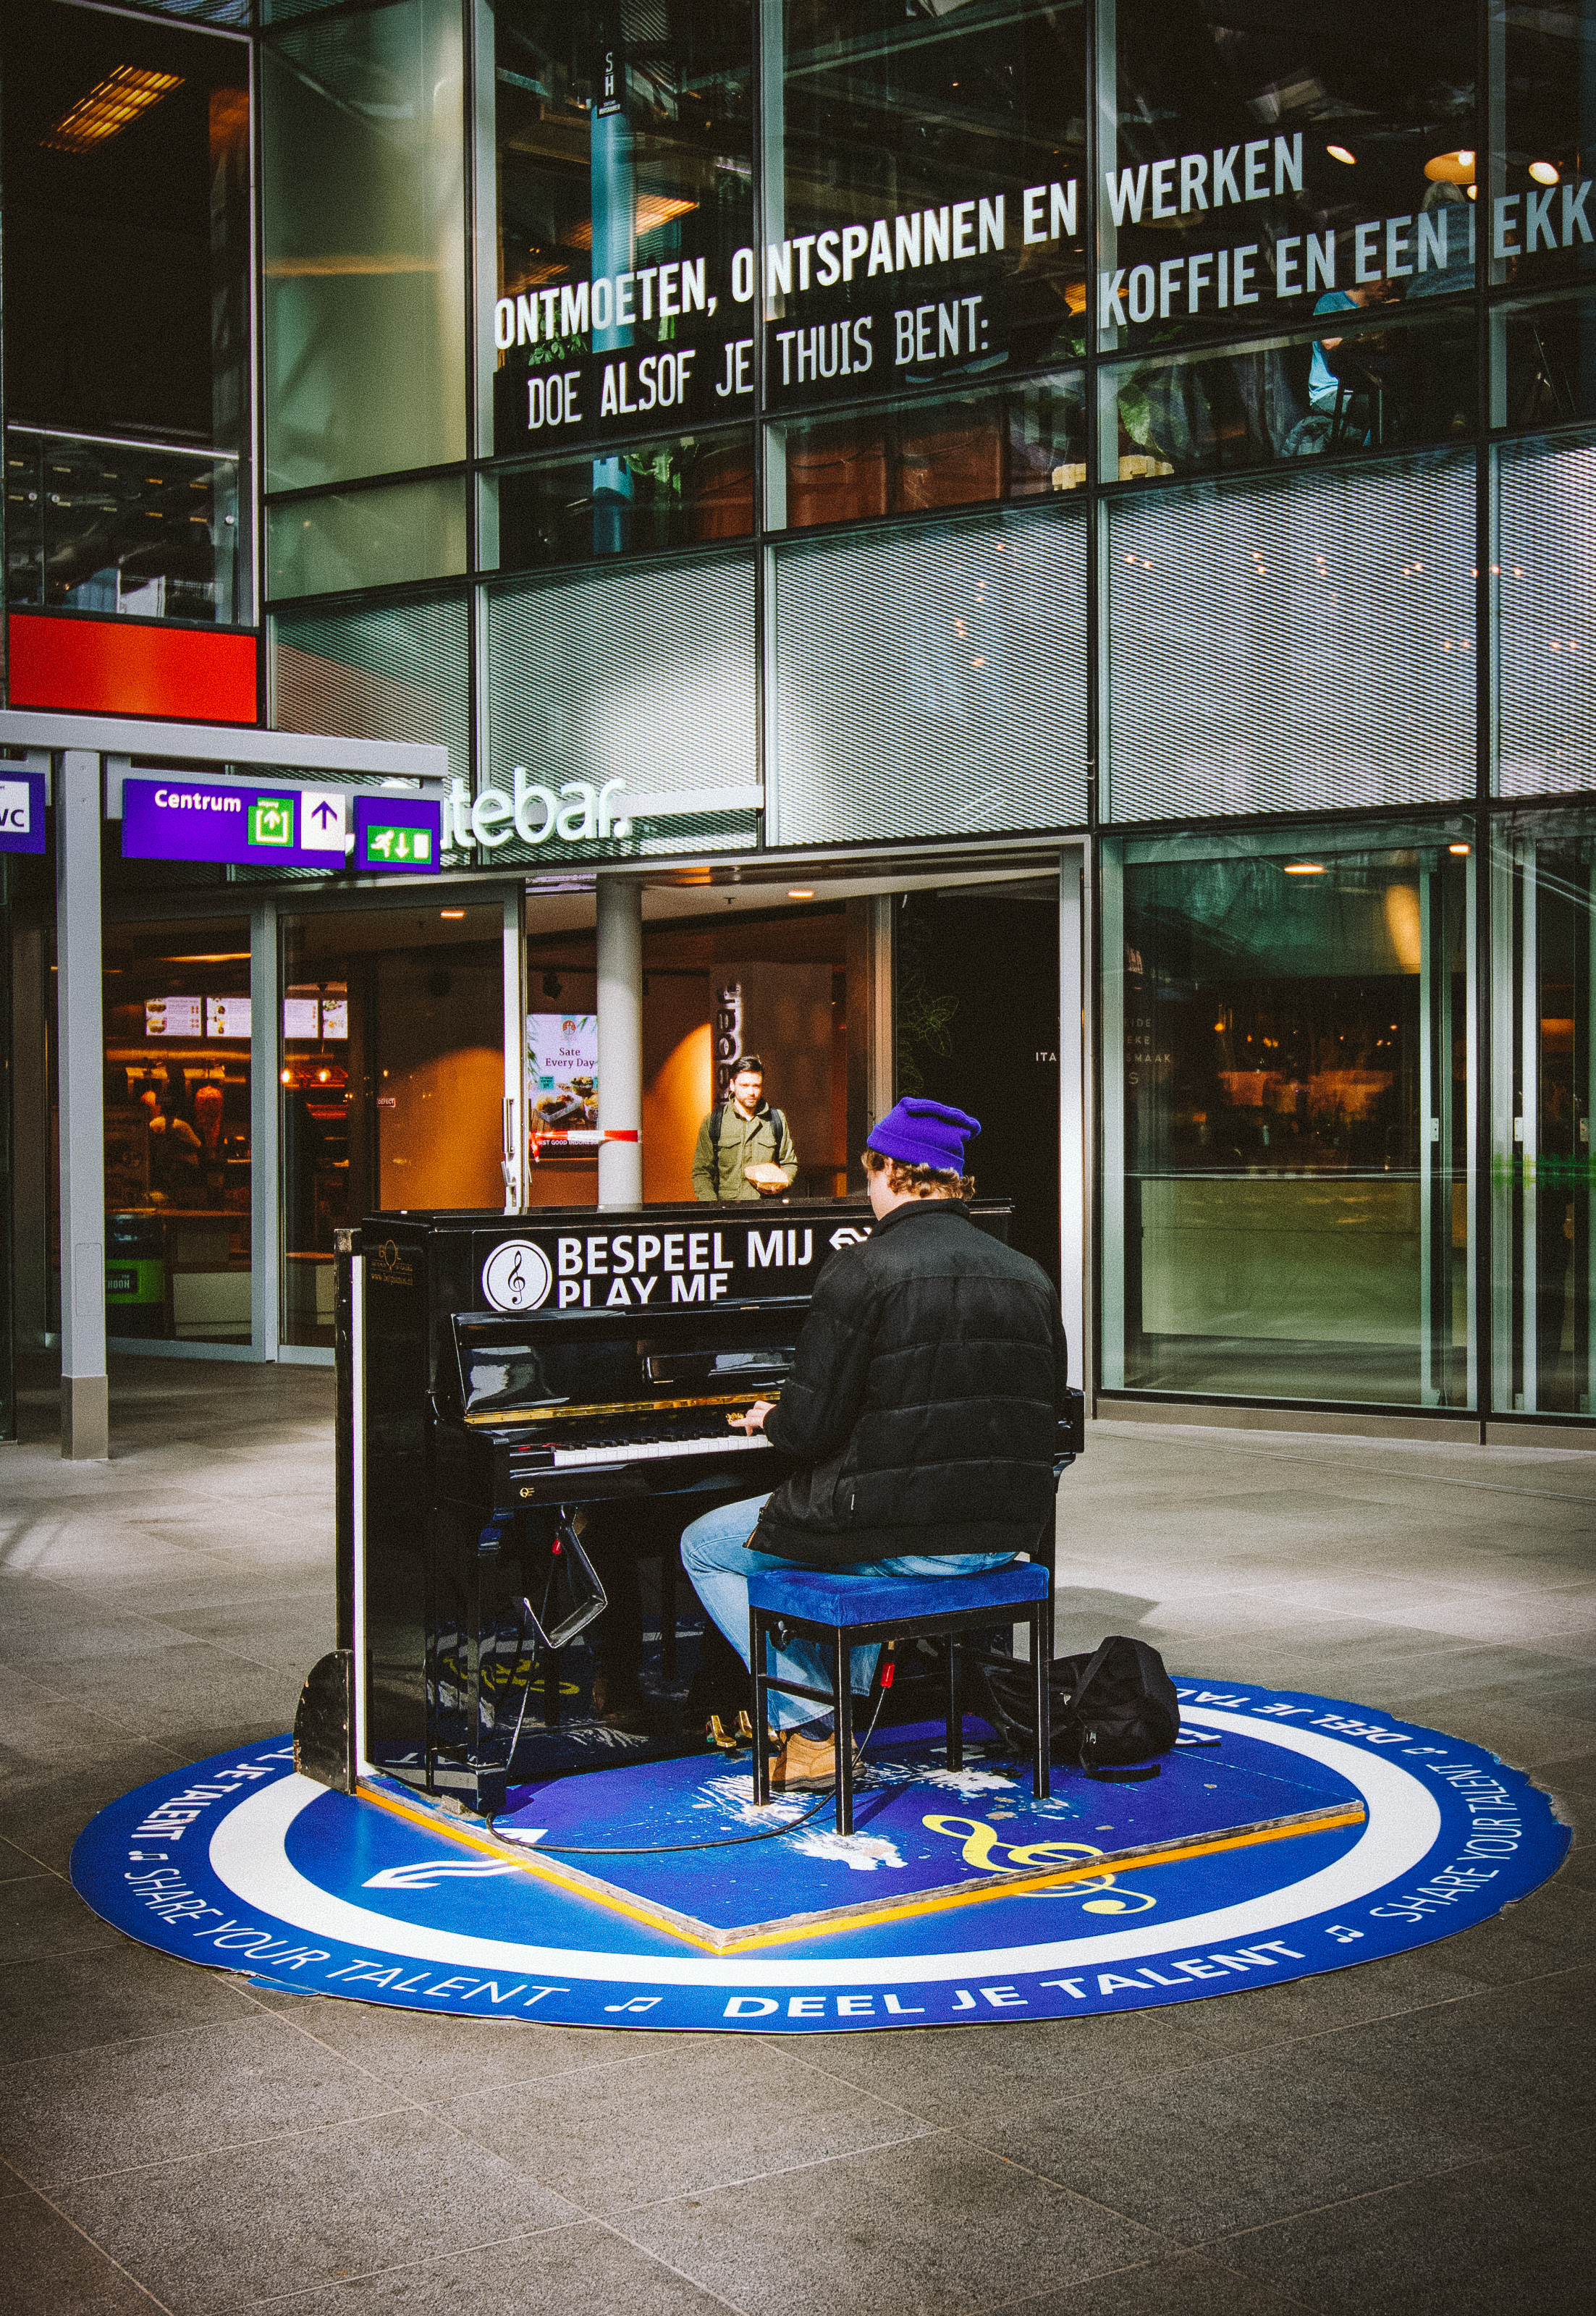 Okay, so I have a thing for public pianos like here in The Hague.